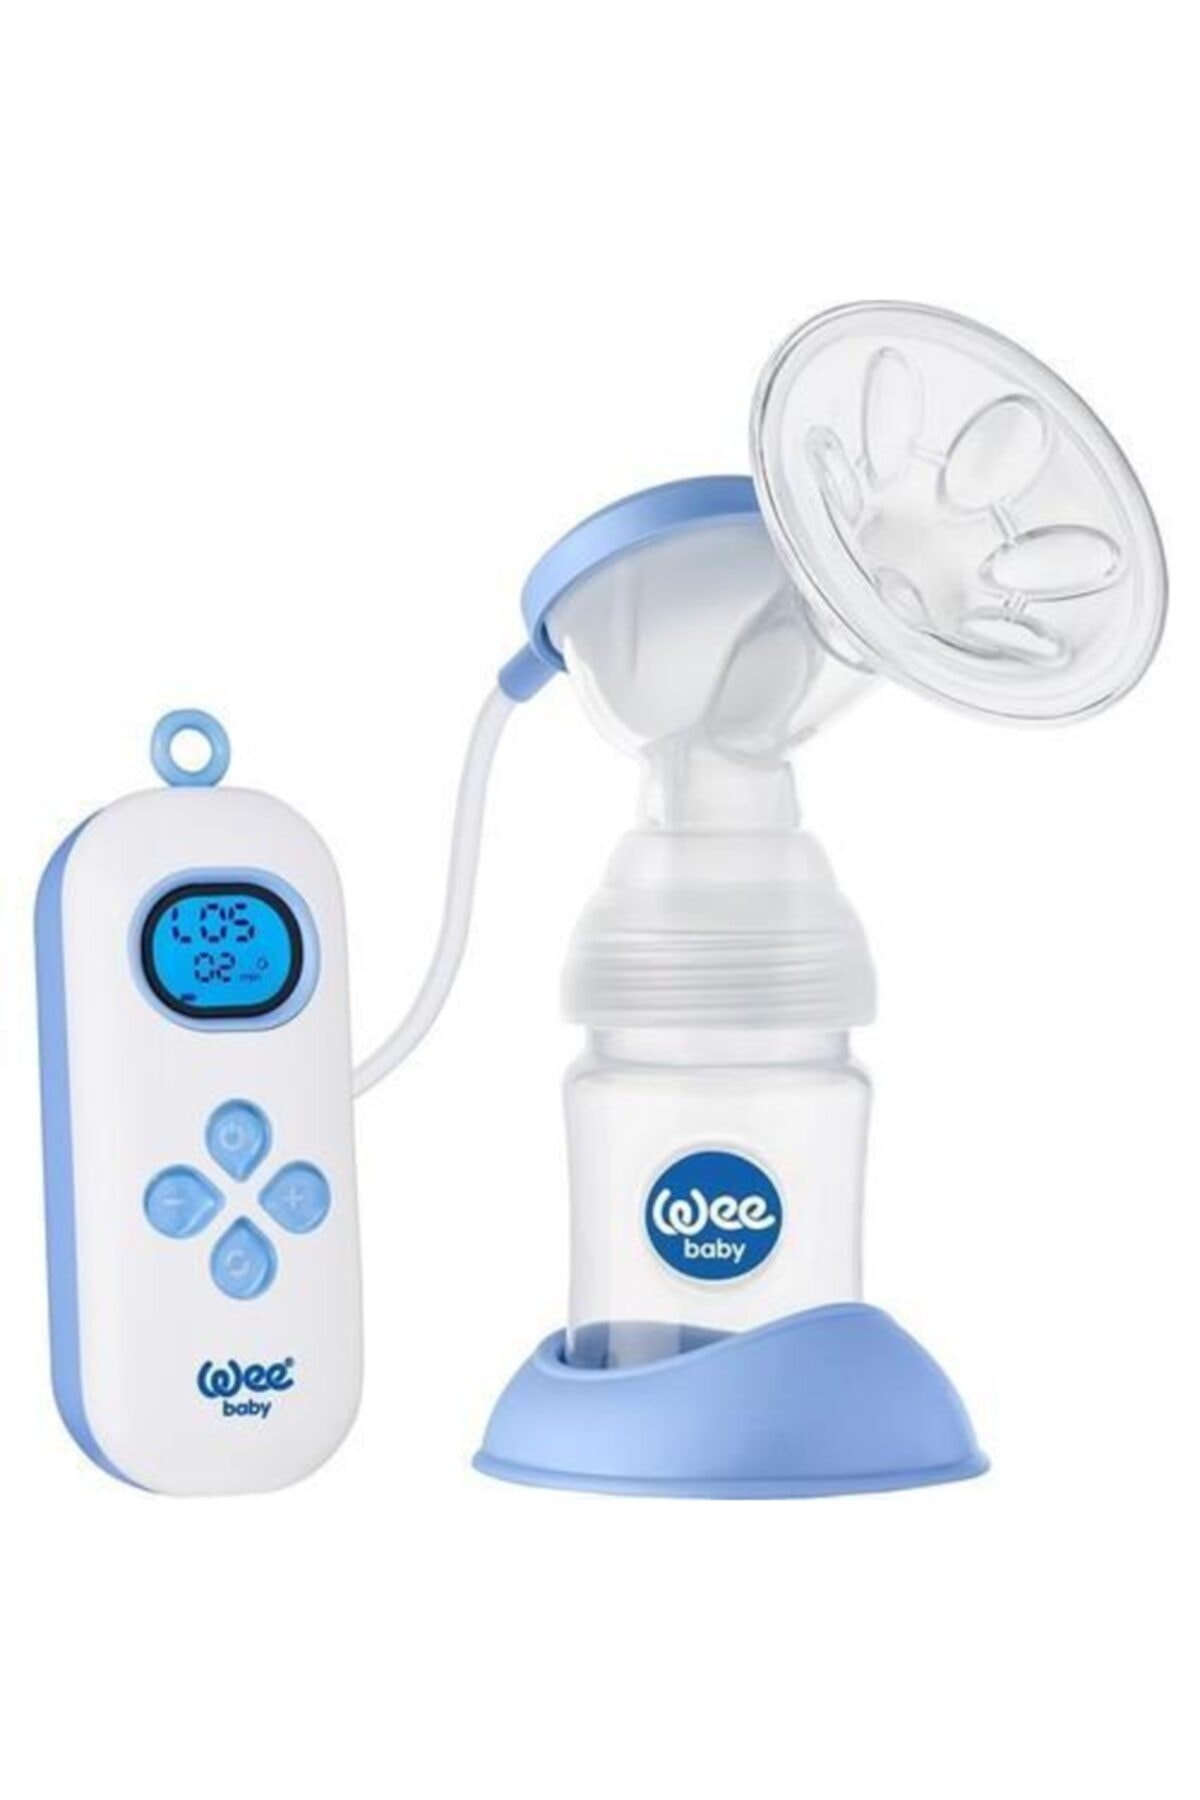 Wee baby Ultra portable rechargeable single breast pump